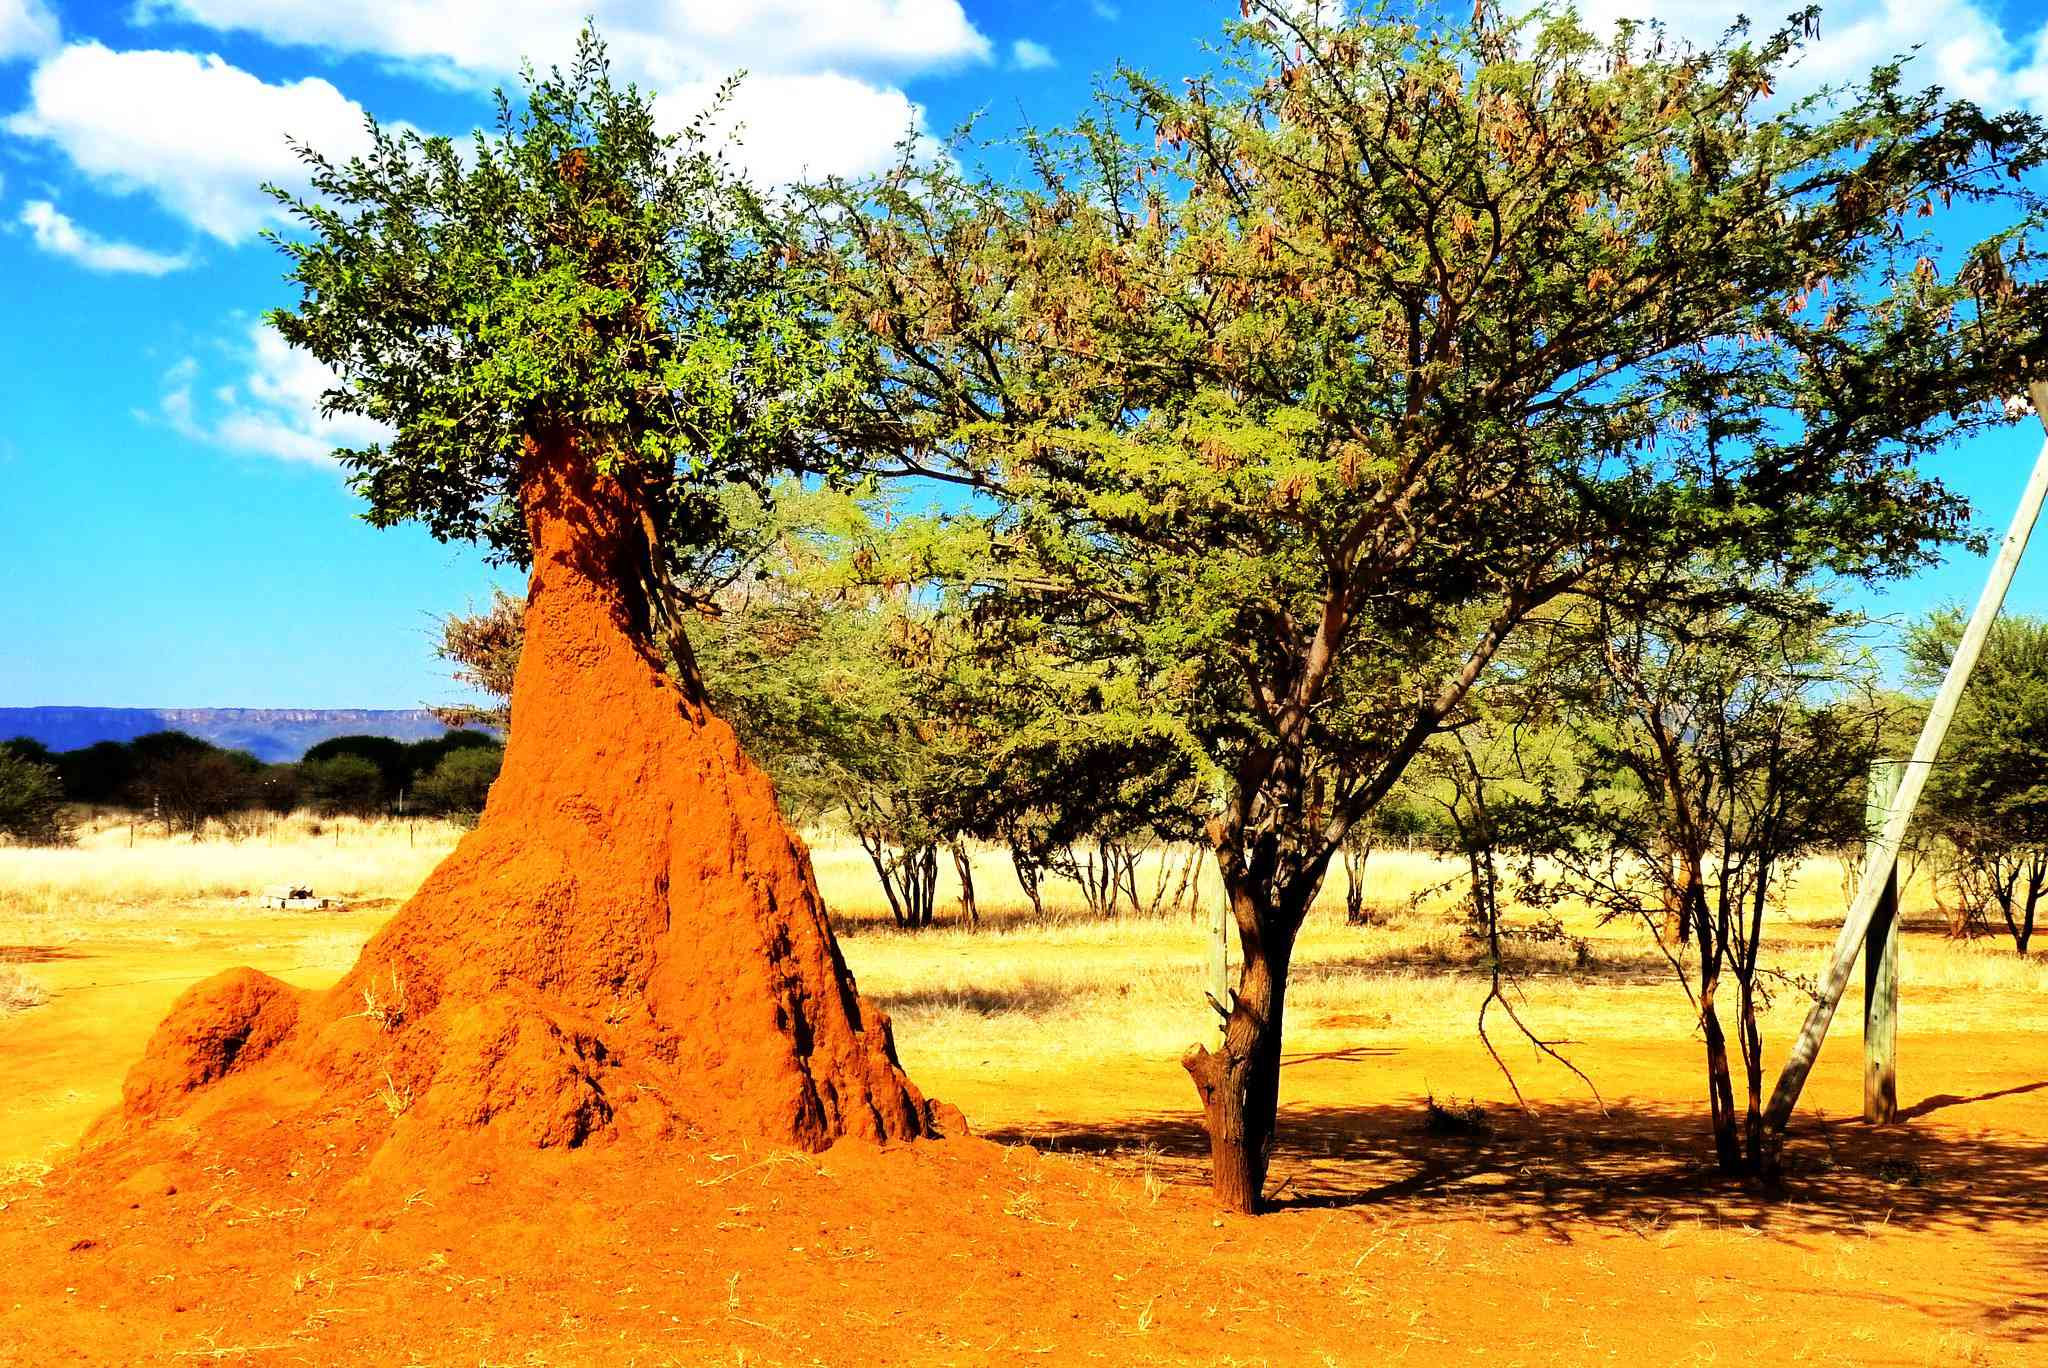 Termite mound as big as a tree on the African savannah